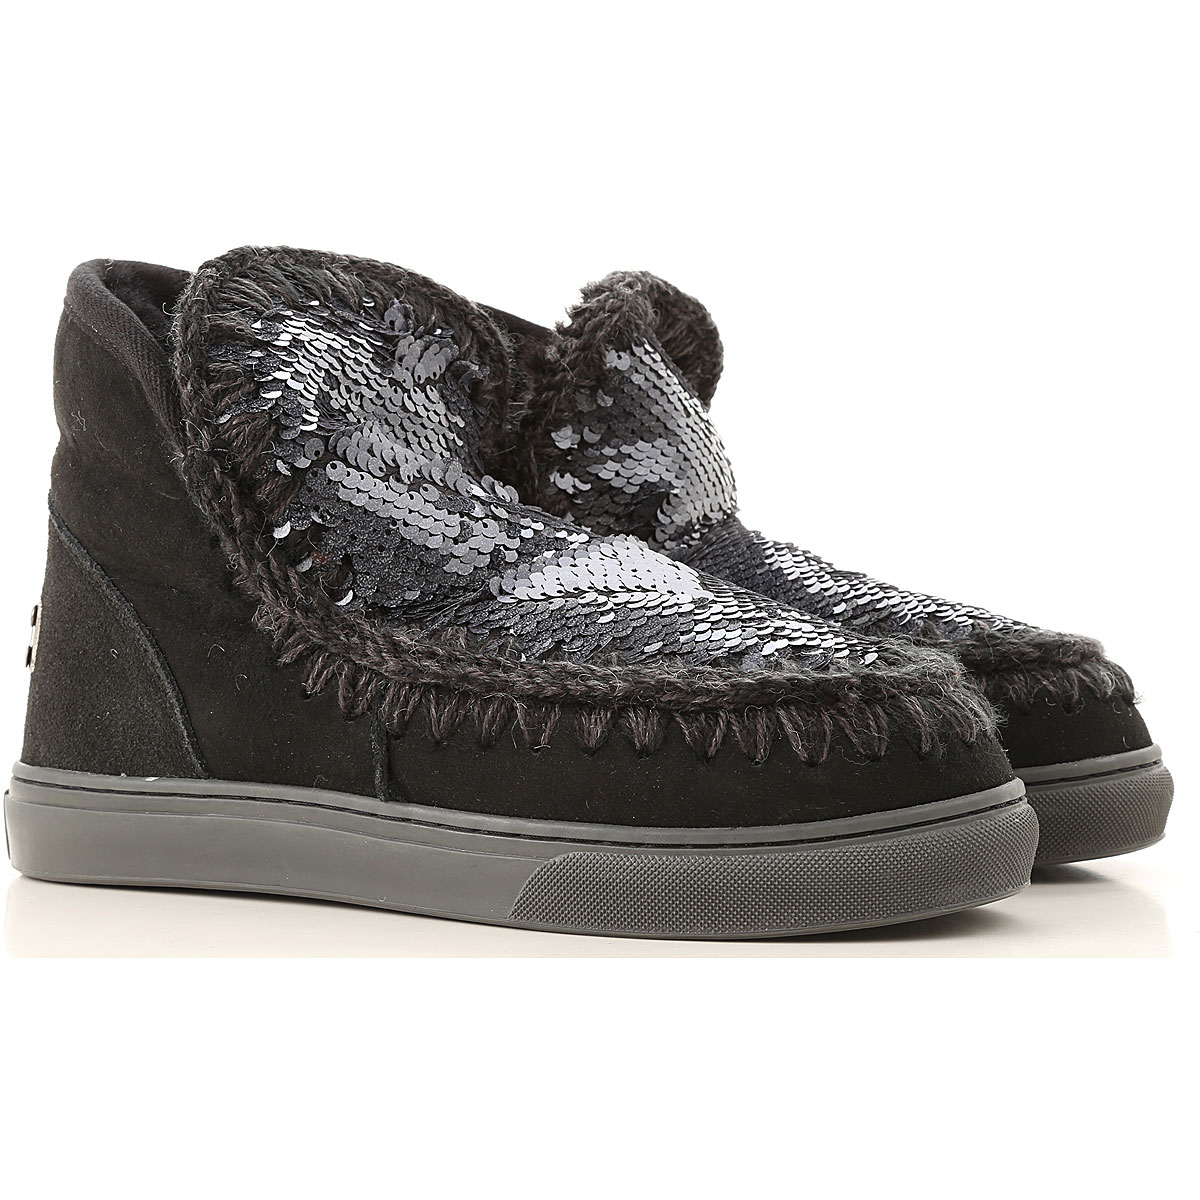 Image of Mou Boots for Women, Booties, Black, suede, 2017, EUR 37 - UK 4 - USA 6.5 EUR 38 - UK 5 - USA 7.5 EUR 39 - UK 6 - USA 8.5 EUR 40 - UK 7 - USA 9.5